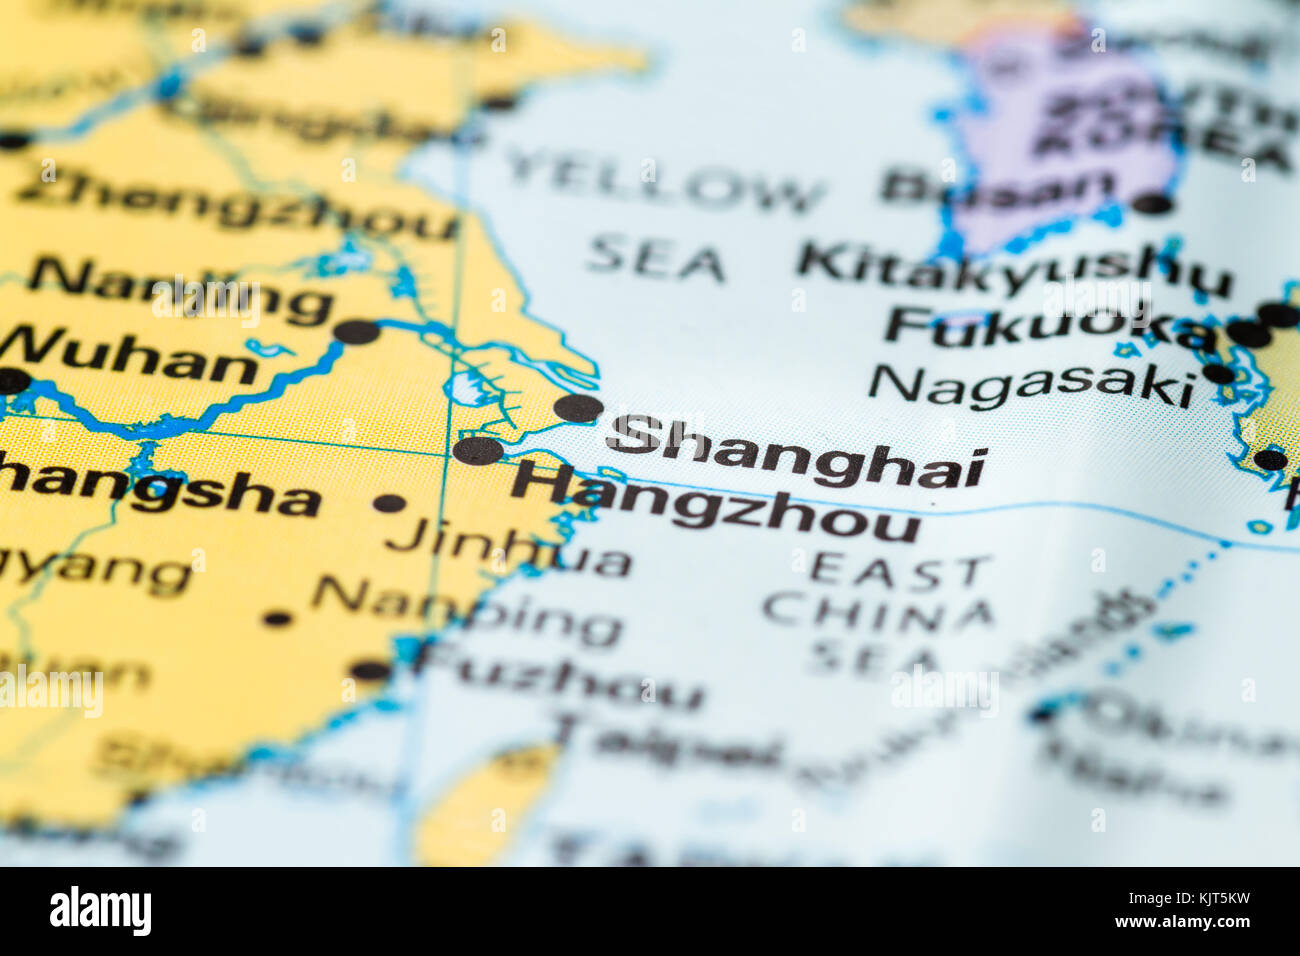 Close up of shanghai on a world map stock photo 166488445 alamy close up of shanghai on a world map gumiabroncs Images